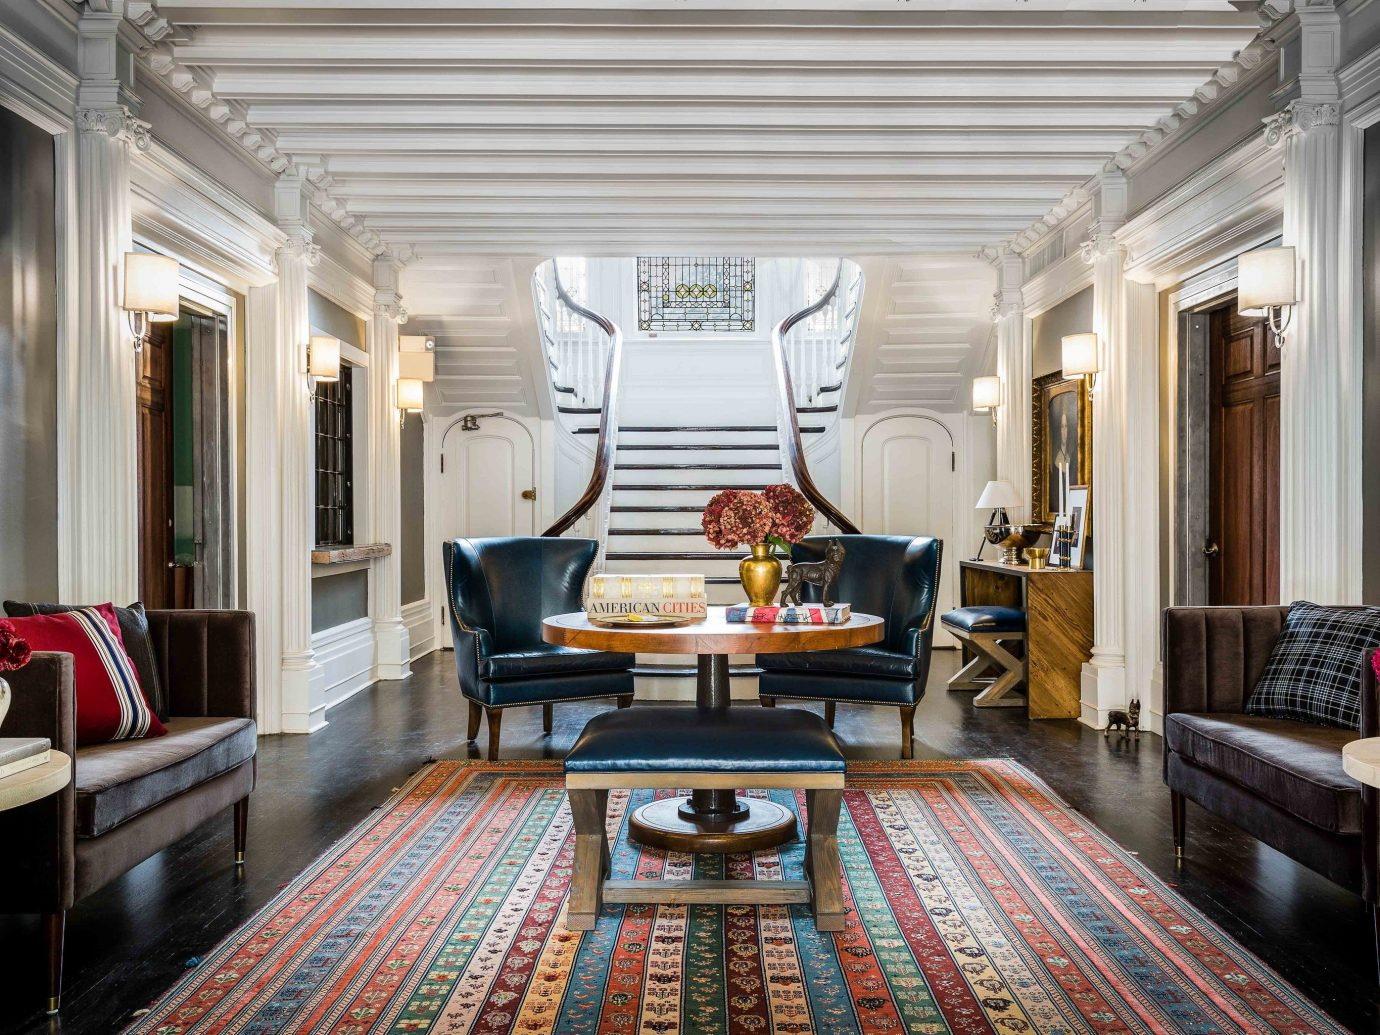 Boutique Hotels Hotels Influencers + Tastemakers Romantic Hotels Style + Design living room room interior design ceiling Lobby Suite flooring furniture